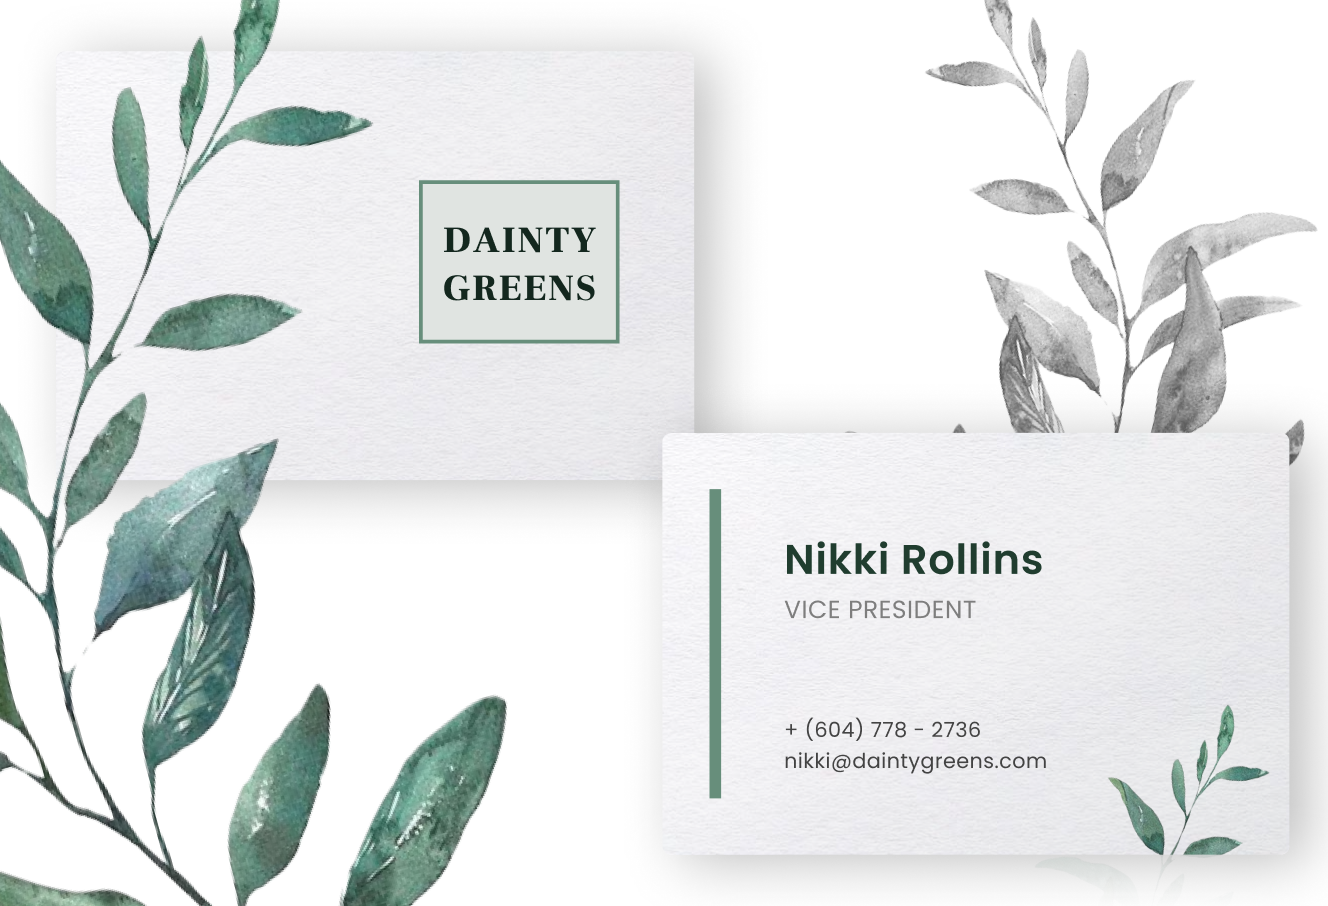 Dainty Greens - branding for a chic plant shop